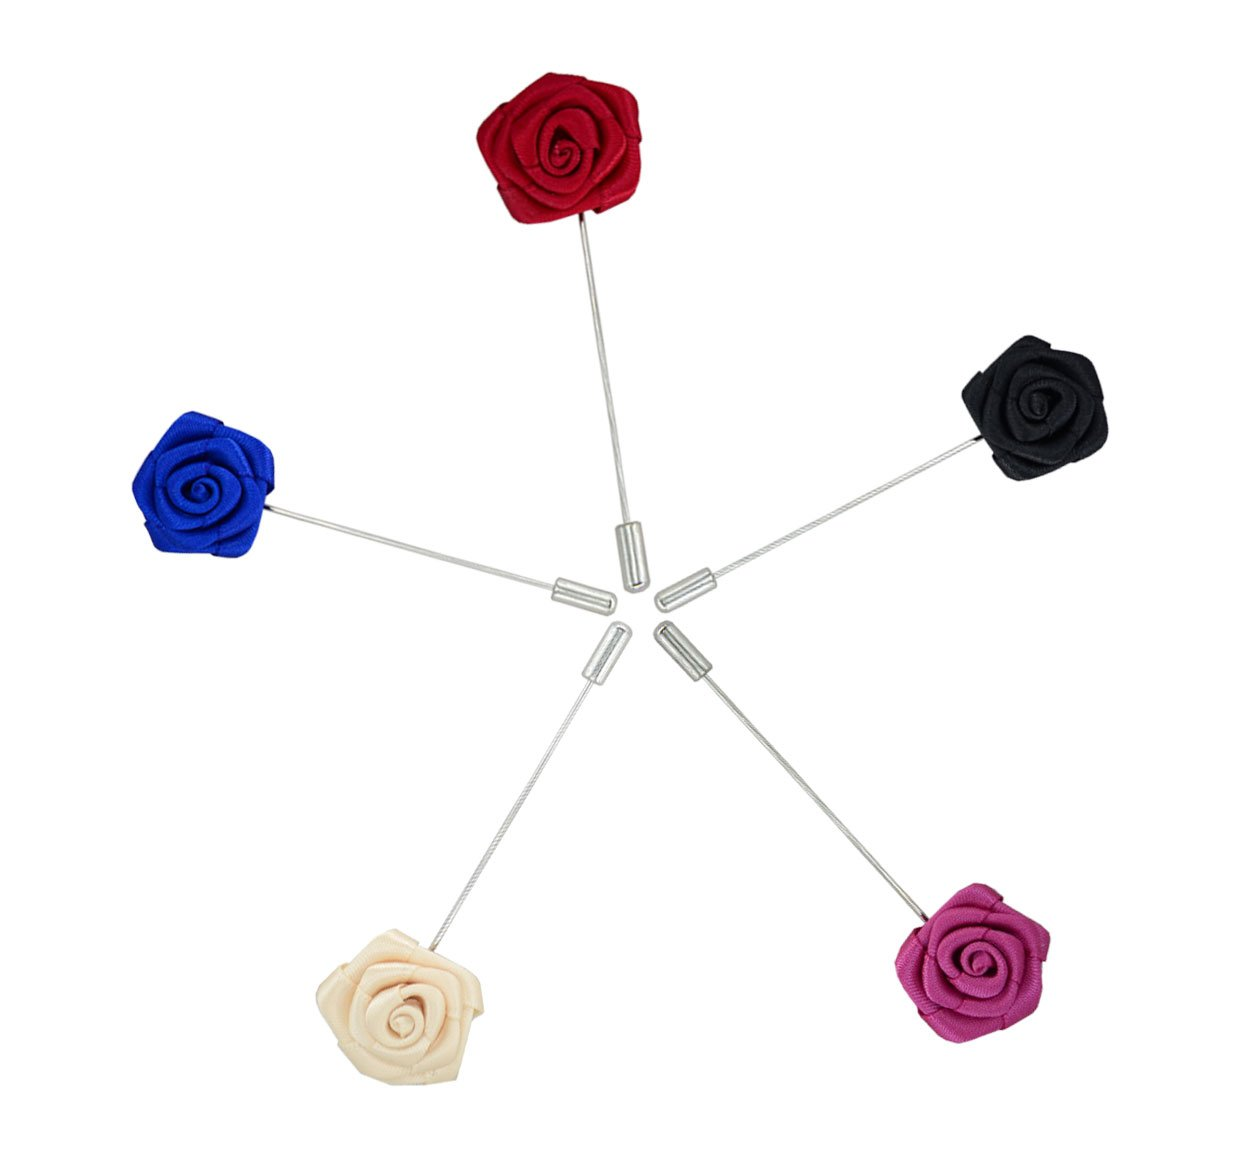 5 Pcs Heymei Men's Mixed Color Brooches Flower Lapel Floral Pins for Suit BS02 (Multi3)